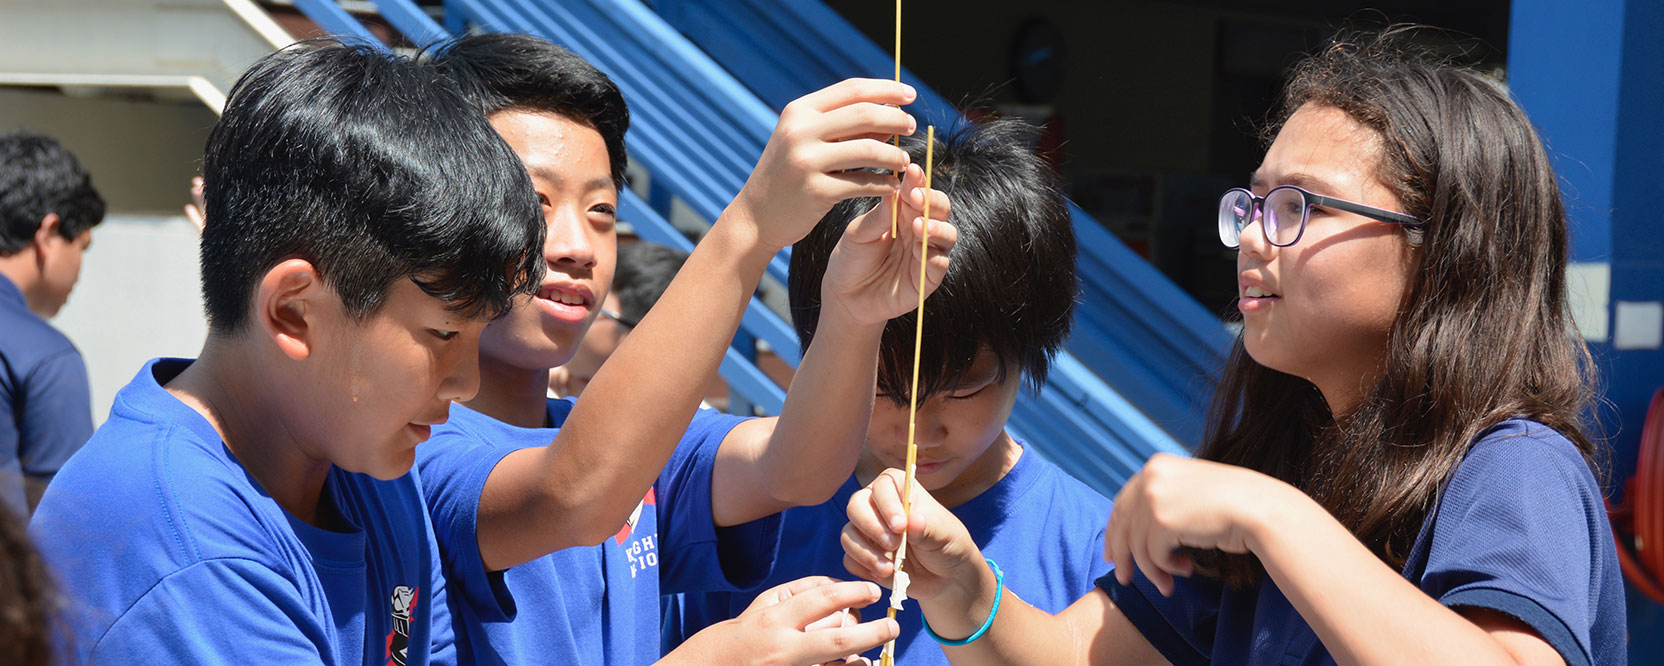 ICS Singapore middle school students performing outdoor science experiment